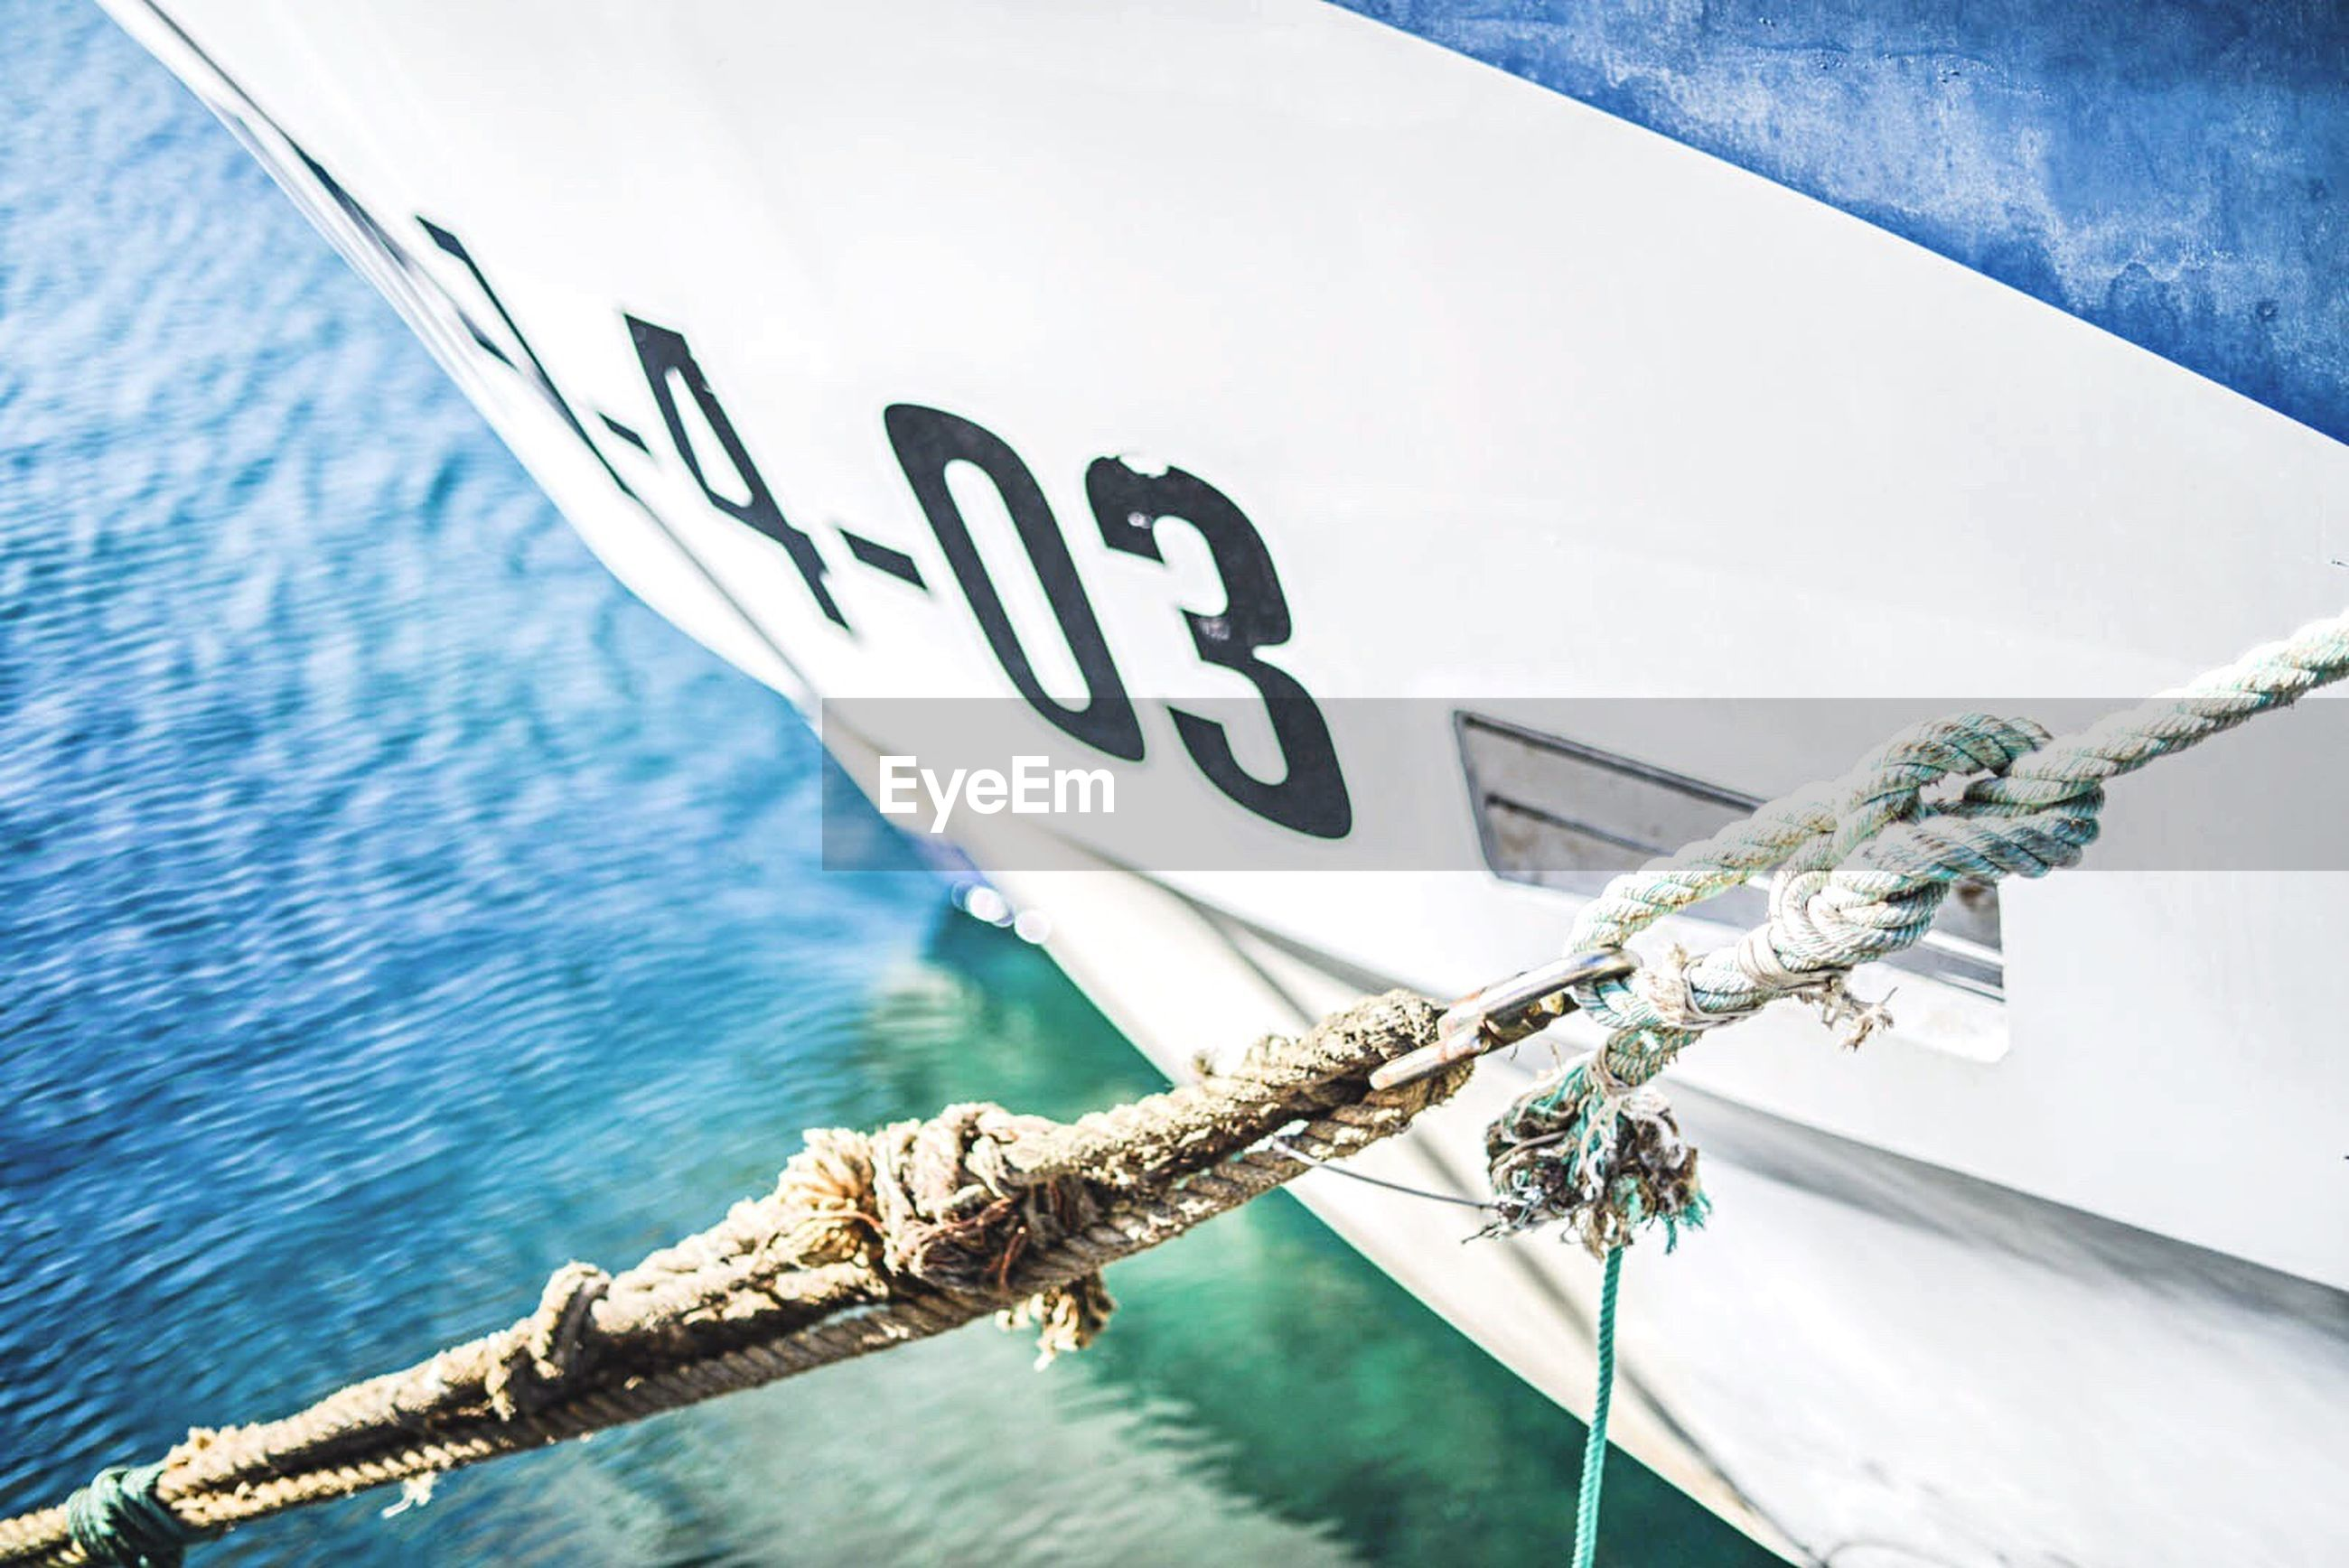 water, nautical vessel, rope, day, text, no people, transportation, outdoors, sea, mode of transport, moored, nature, close-up